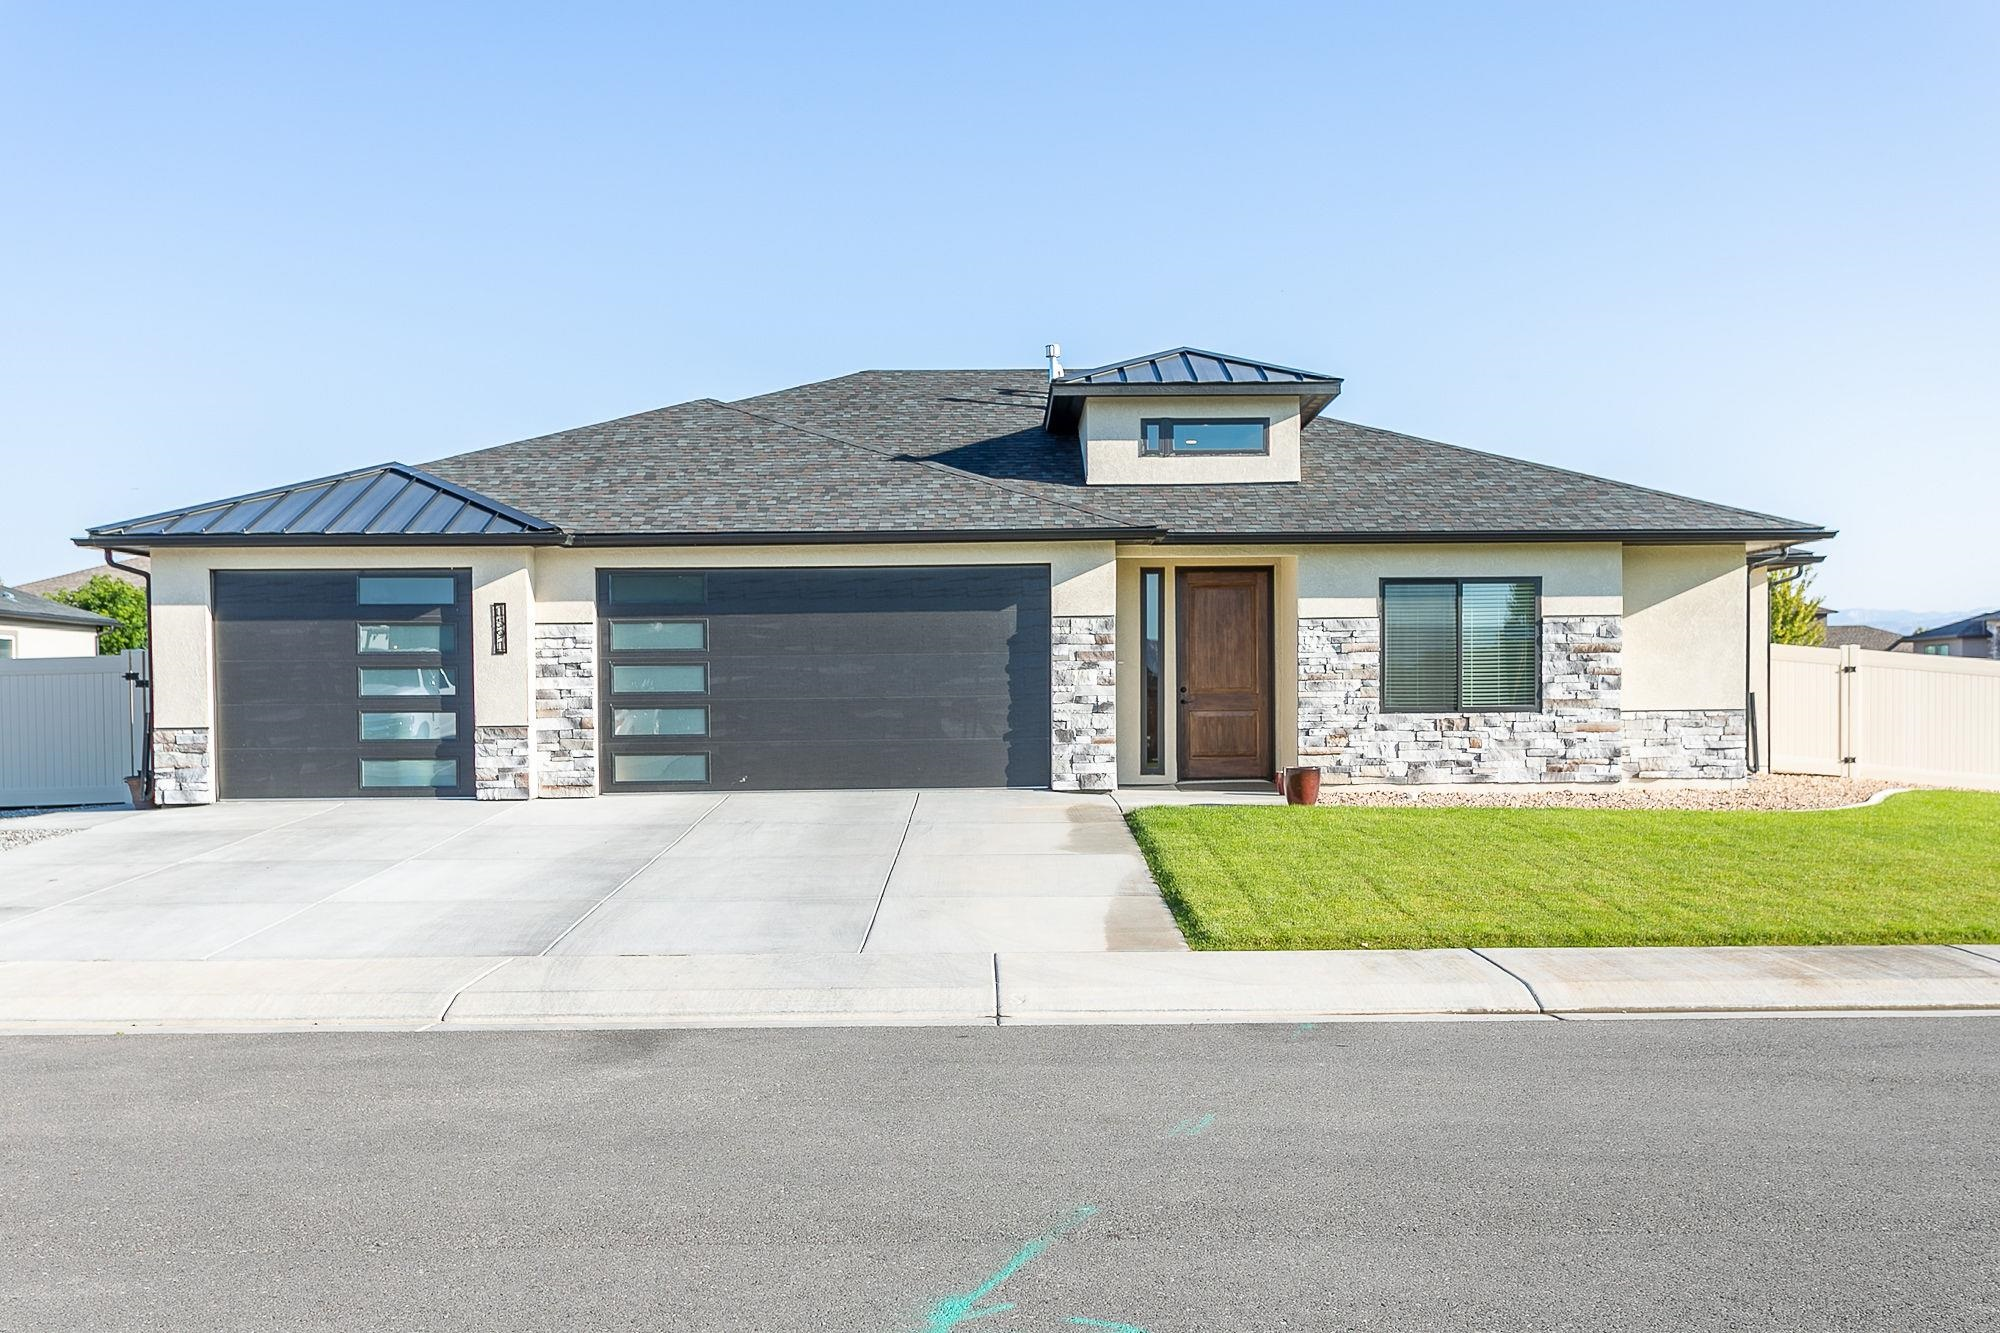 Welcome to 1591 Elmont Ct. in the desirable Brandon Estates in beautiful Fruita! This home was built in 2021 and has all the features one would desire! With 2,100 sq. feet, 4 bedrooms - 2 of them designed as masters - 3 bathrooms and a 3 car garage, finished with epoxy flooring! Inside you will find an open concept living room with welcoming gas fireplace, spacious kitchen and dining area with huge walk in pantry, and large windows giving tons of natural light! Soft close cabinets and many more upgrades are found all throughout the home including walk in closets in each bedroom, Alder Wood doors, and LVP flooring. This home is built on .28 of an acre and is fully fenced and landscaped with a shed + large RV parking, the perfect place to store all your toys!  This turn key home is close to schools and everything to love about Fruita! Welcome home!